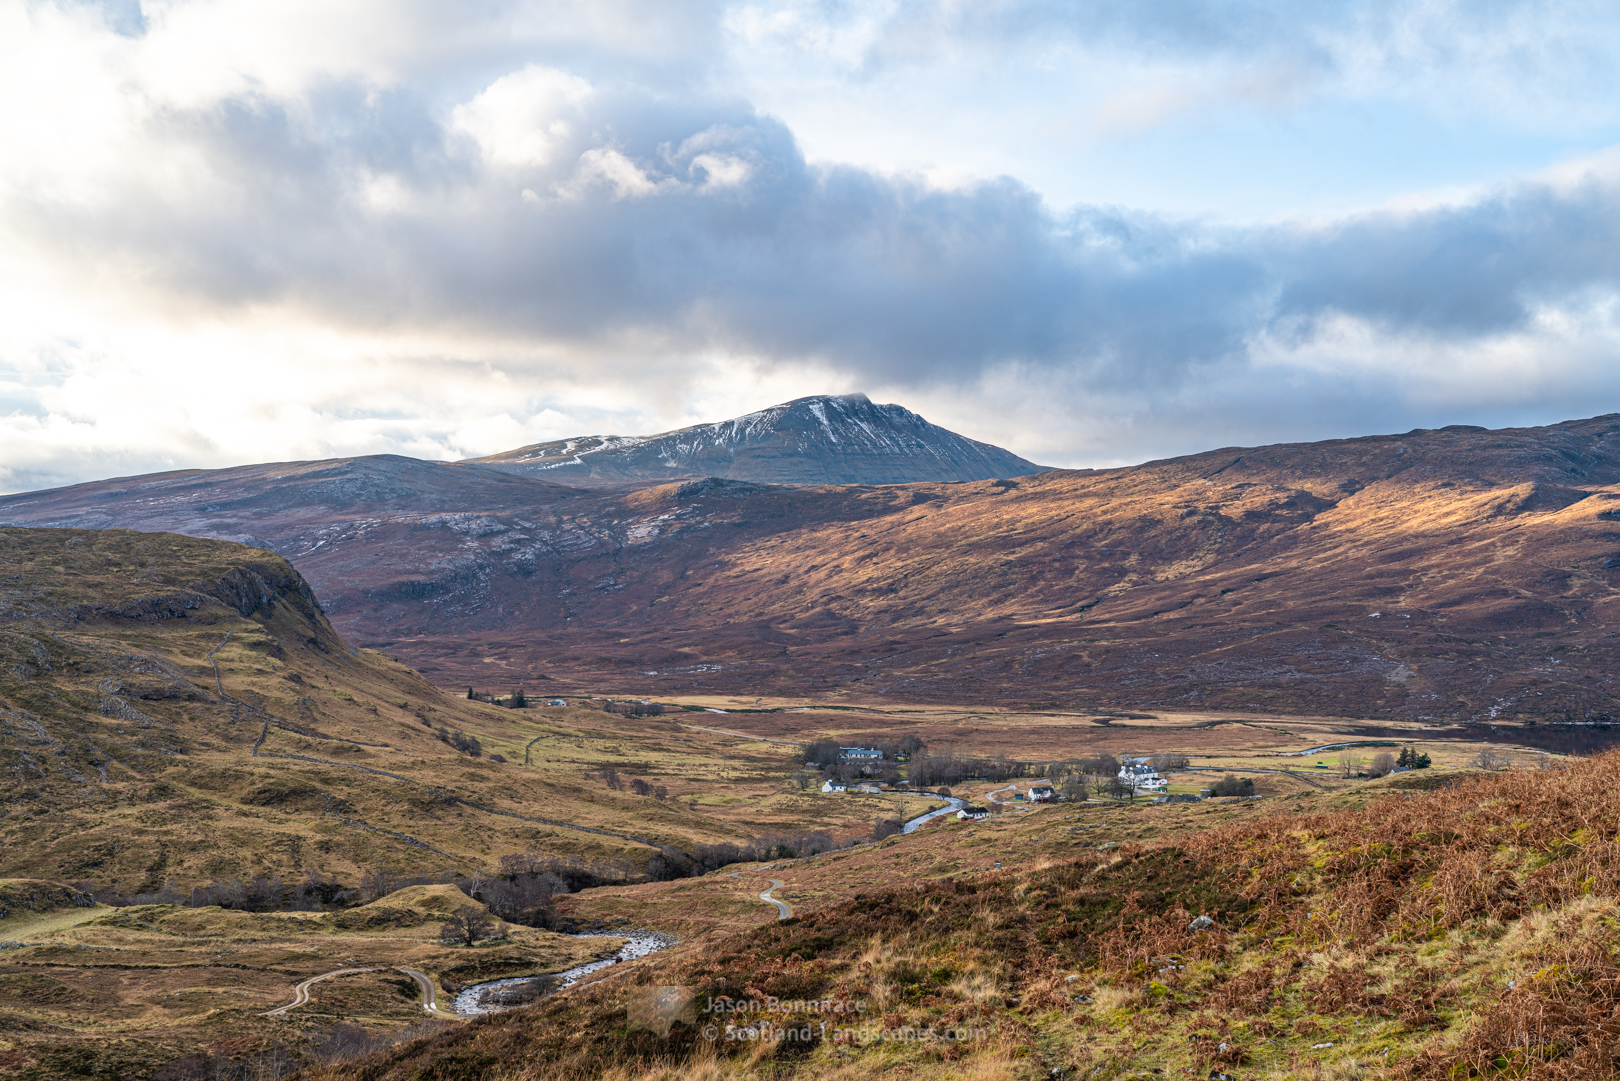 Canisp rises above Inchnadamph from the path to Poll an Droighinn, the River Traligill below